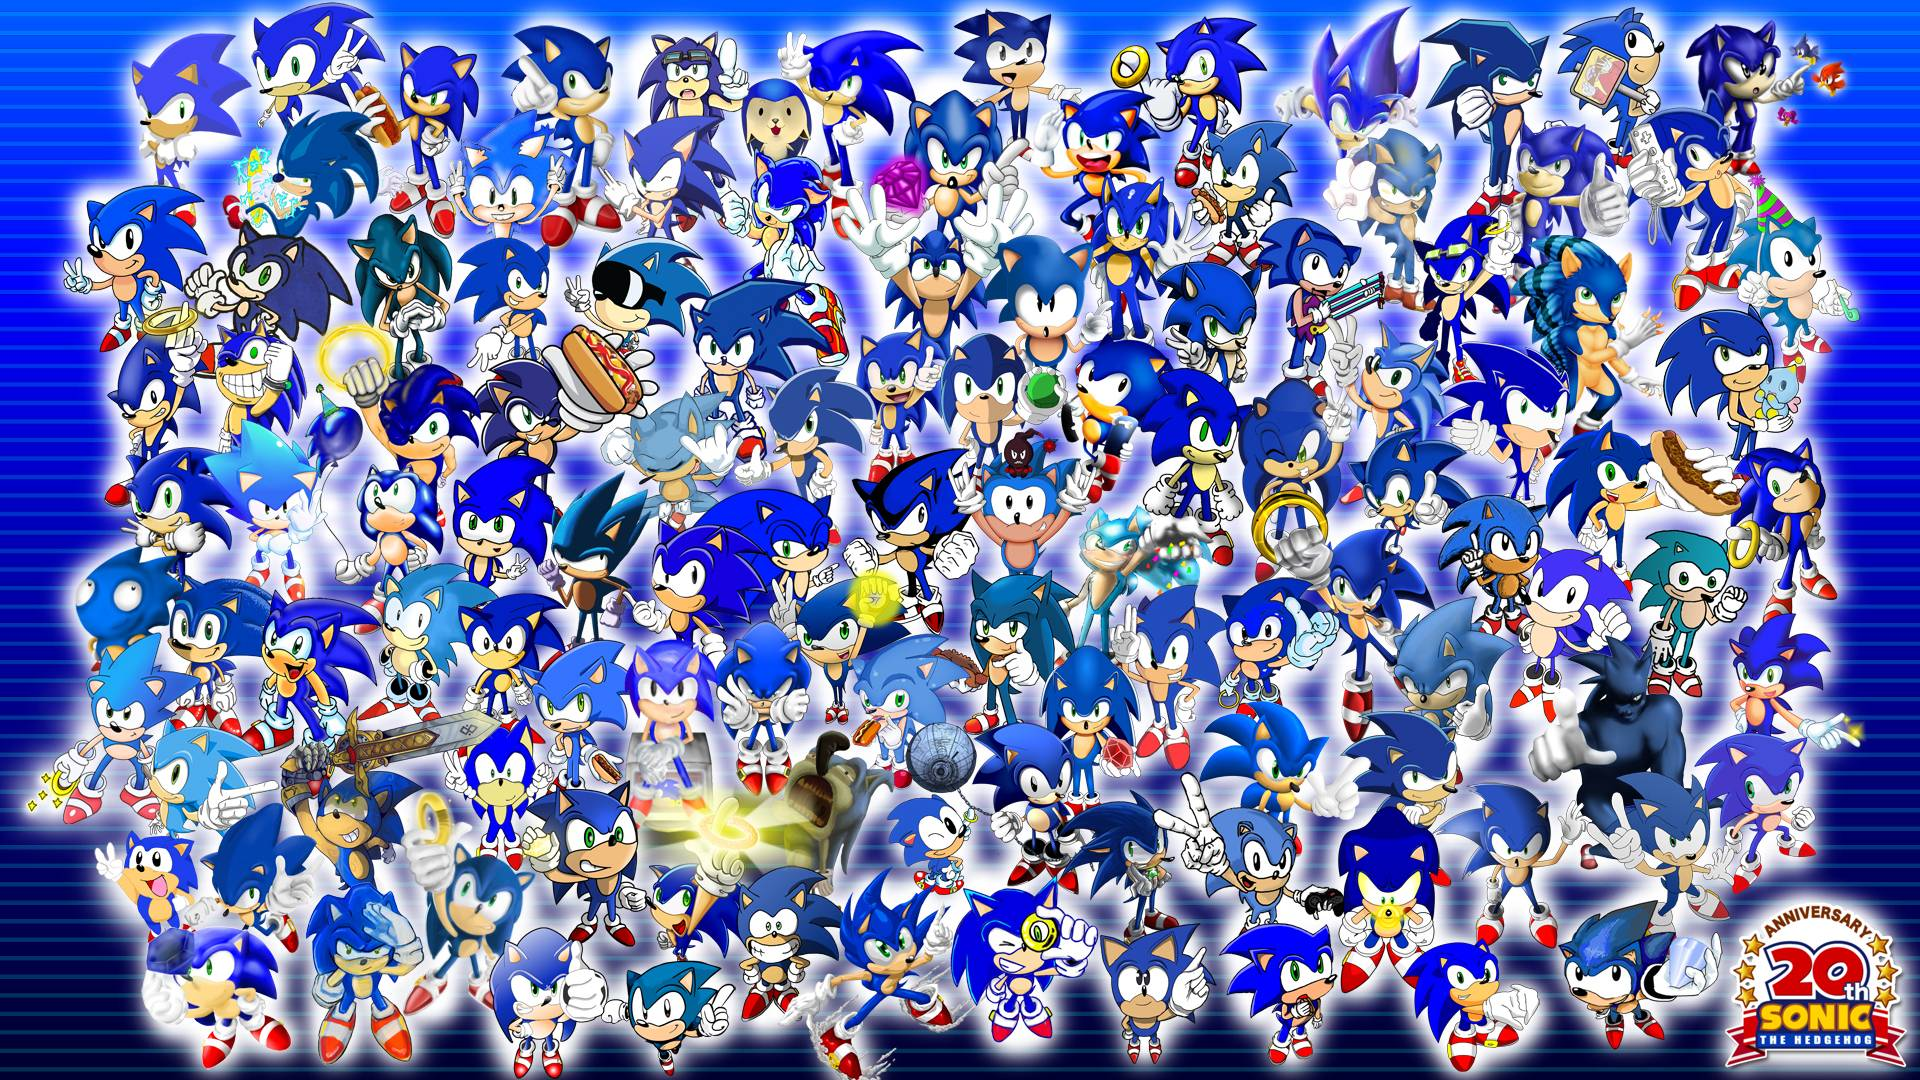 Project 20 Sonic Wallpapers